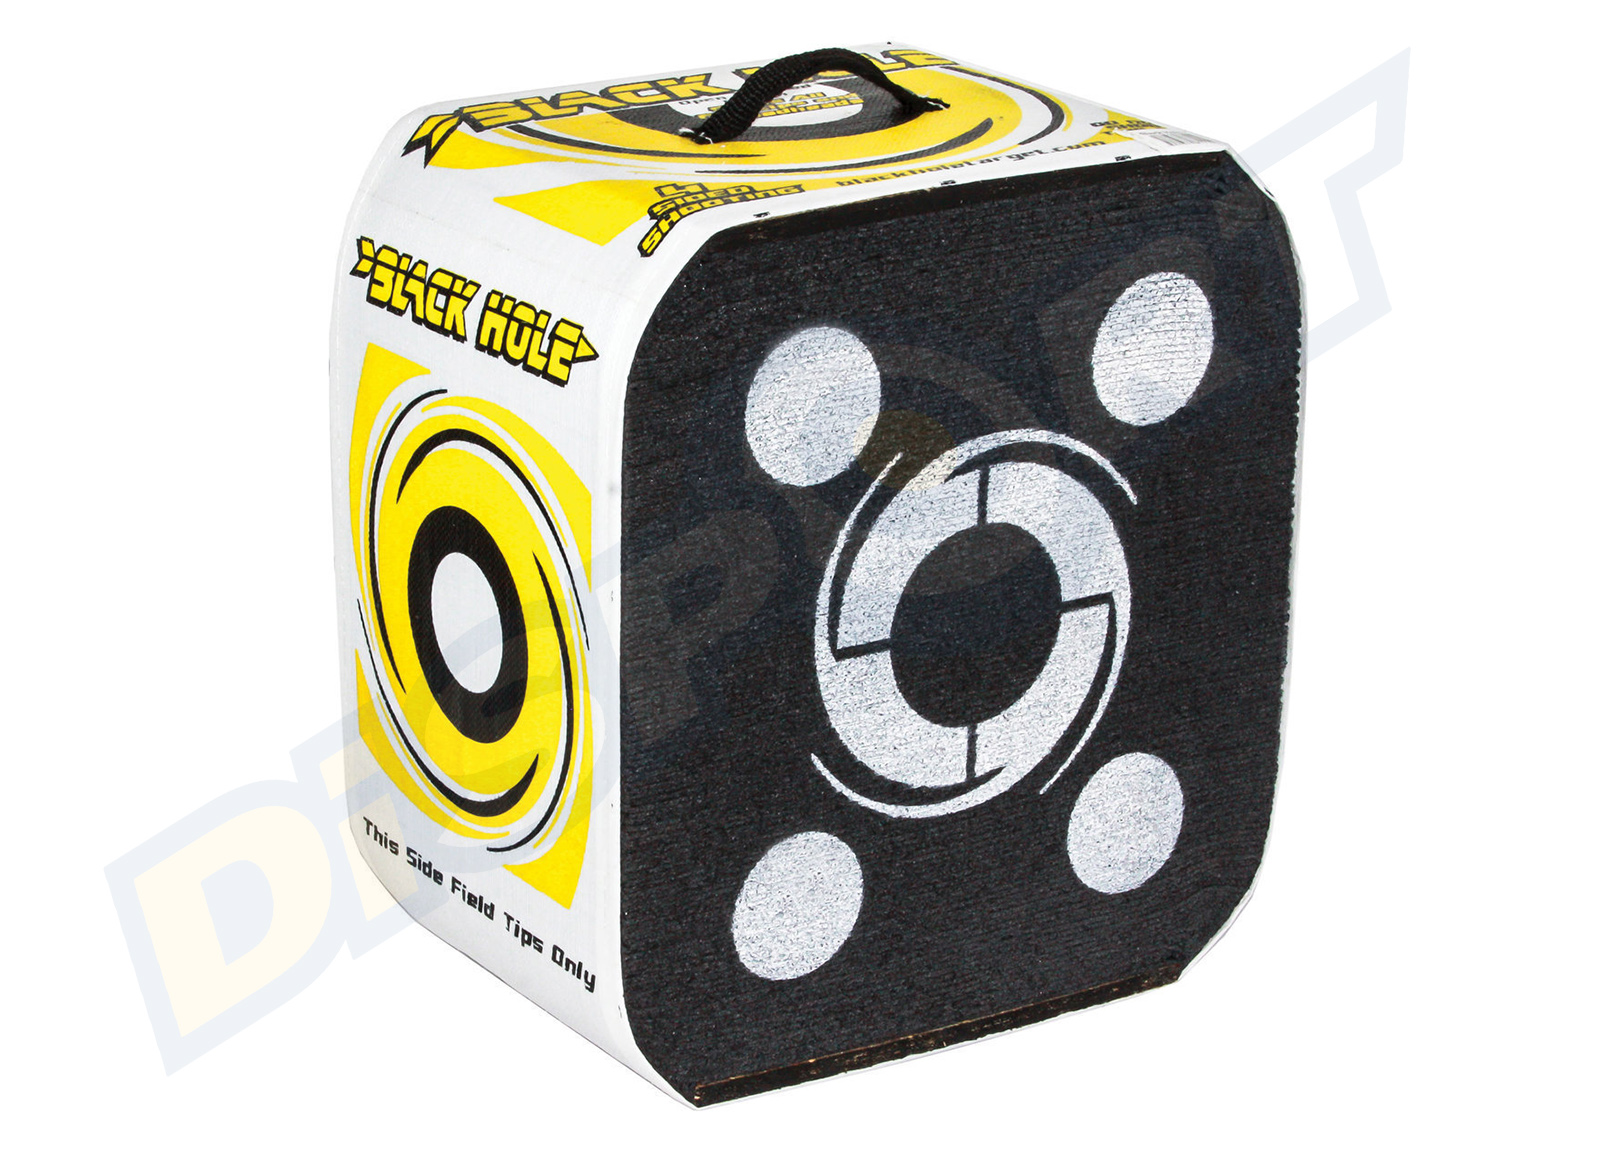 FIELD LOGIC BLACK HOLE TARGETS LARGE 22 - 22''X20''X11''